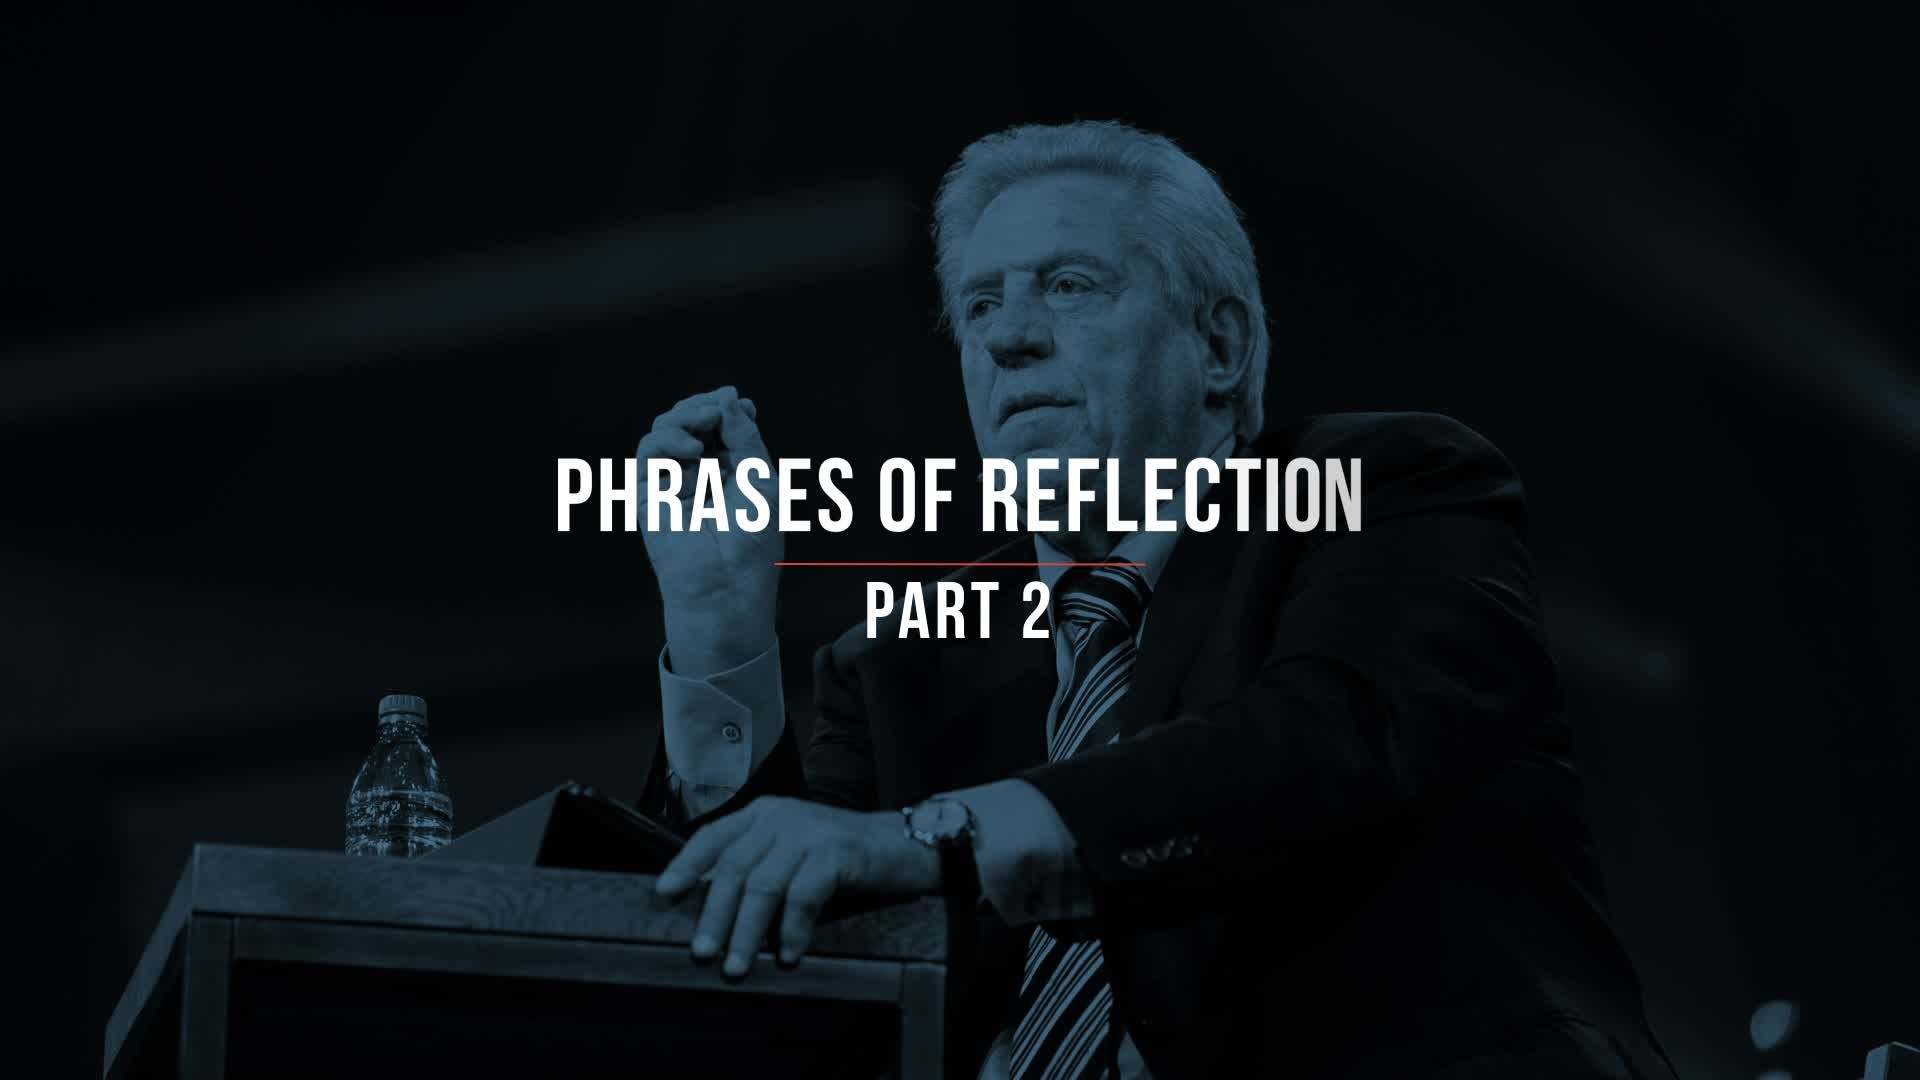 Phrases of Reflection Part 2